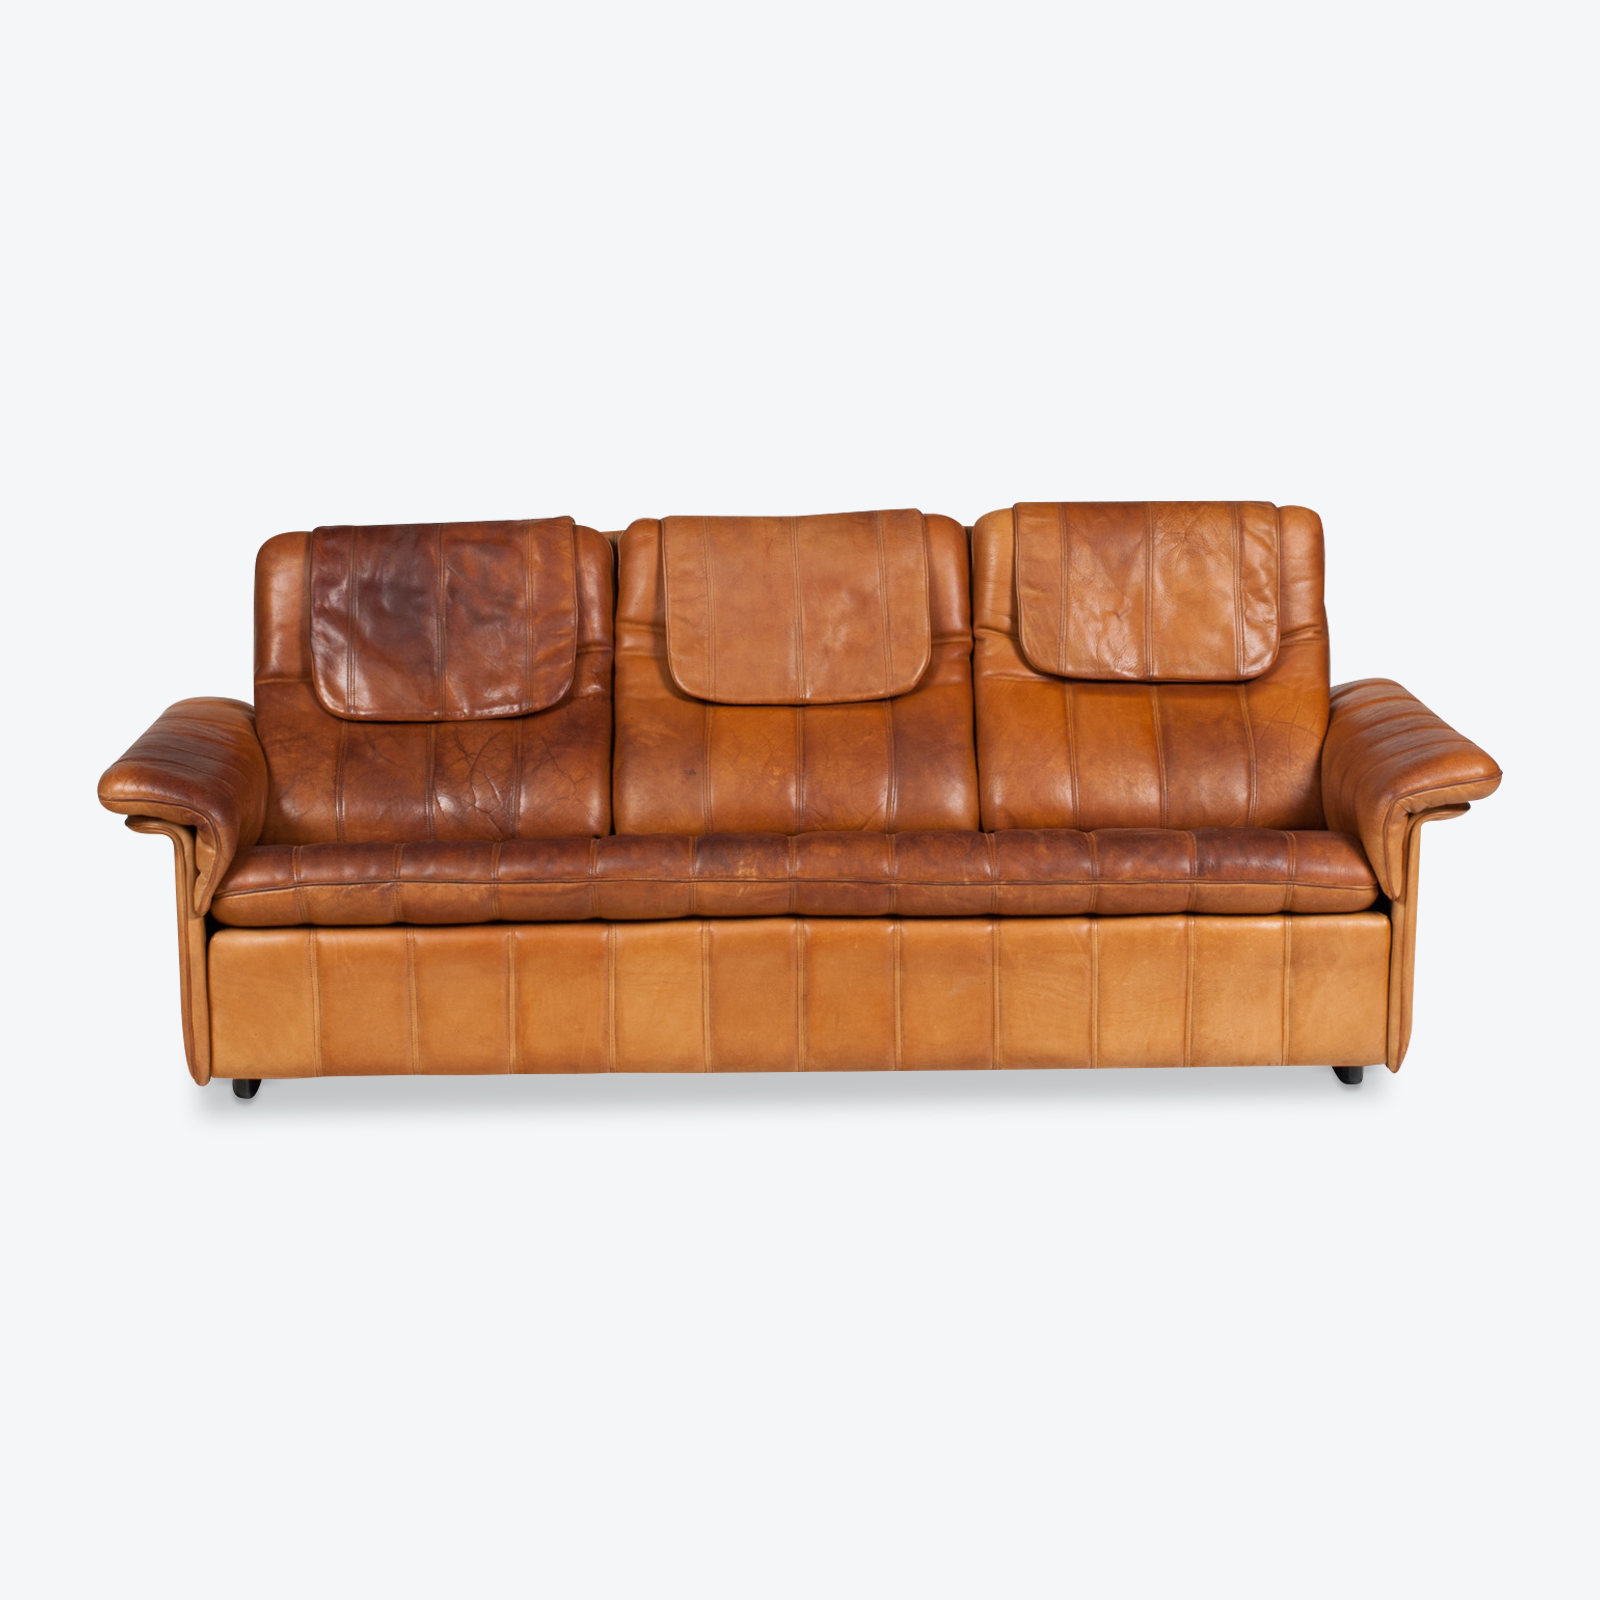 3 Seat Sofa By De Sede In Tan Leather 1970s Switzerland 01